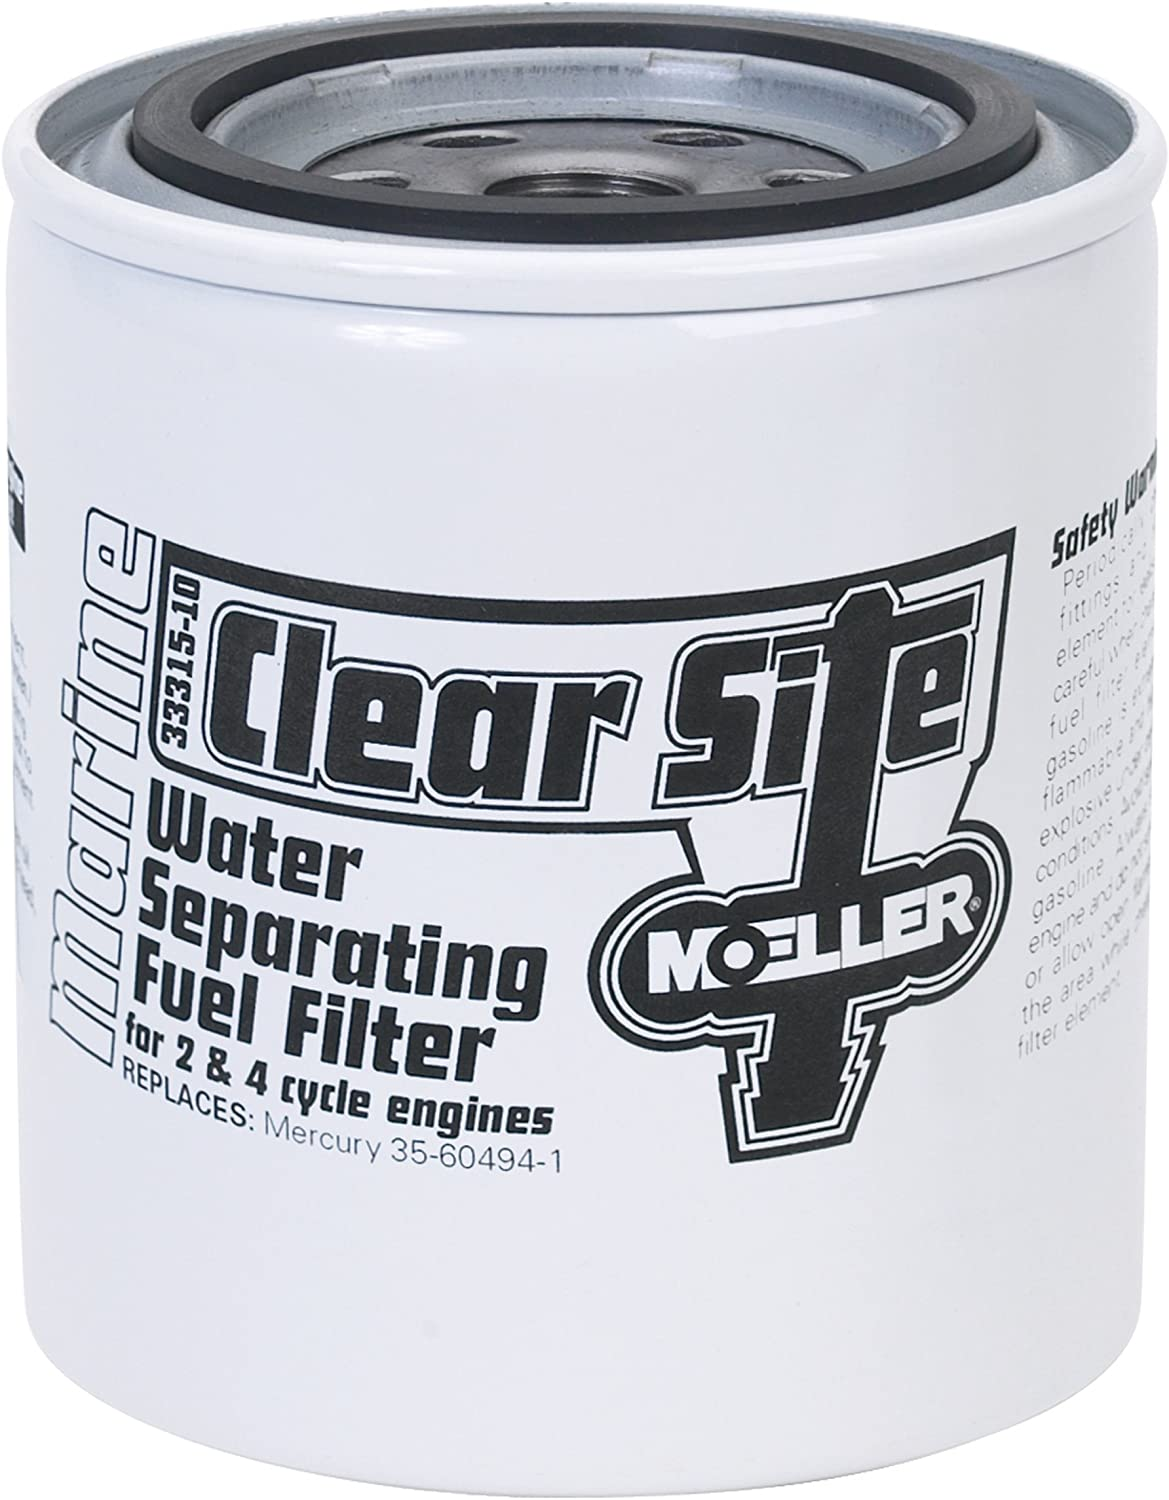 """Moeller Clear Site Water Separating Fuel Filter System 3//8/"""" NPT, Aluminum Boat"""